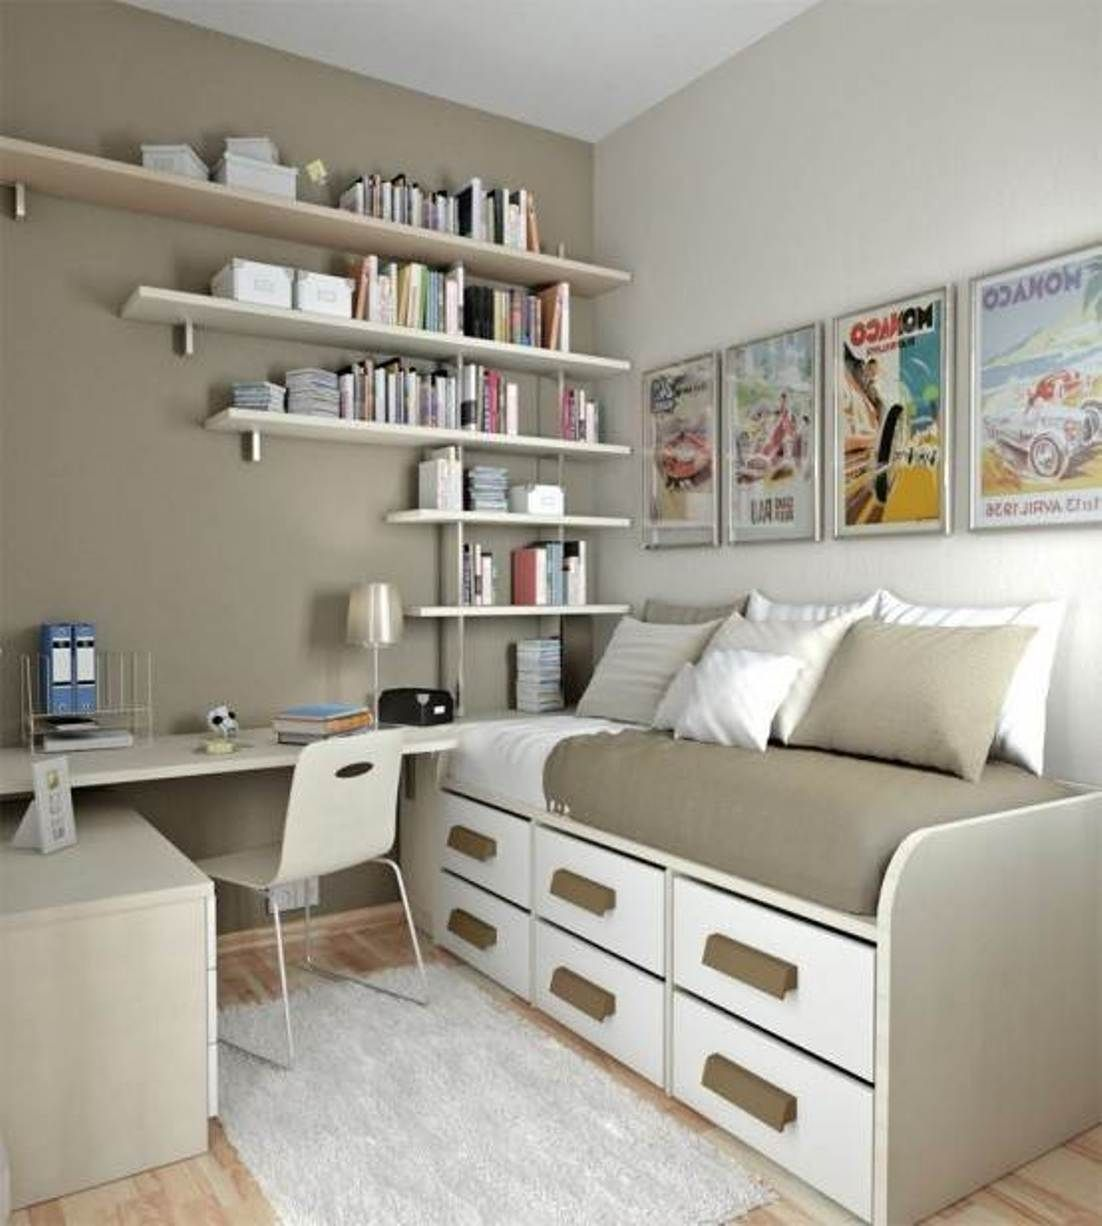 Space Saving Ideas Small Bedroom Part - 30: Wall Mounted Storage Ideas For Small Bedrooms : Space Saving Storage Ideas  For Small Bedrooms U2013